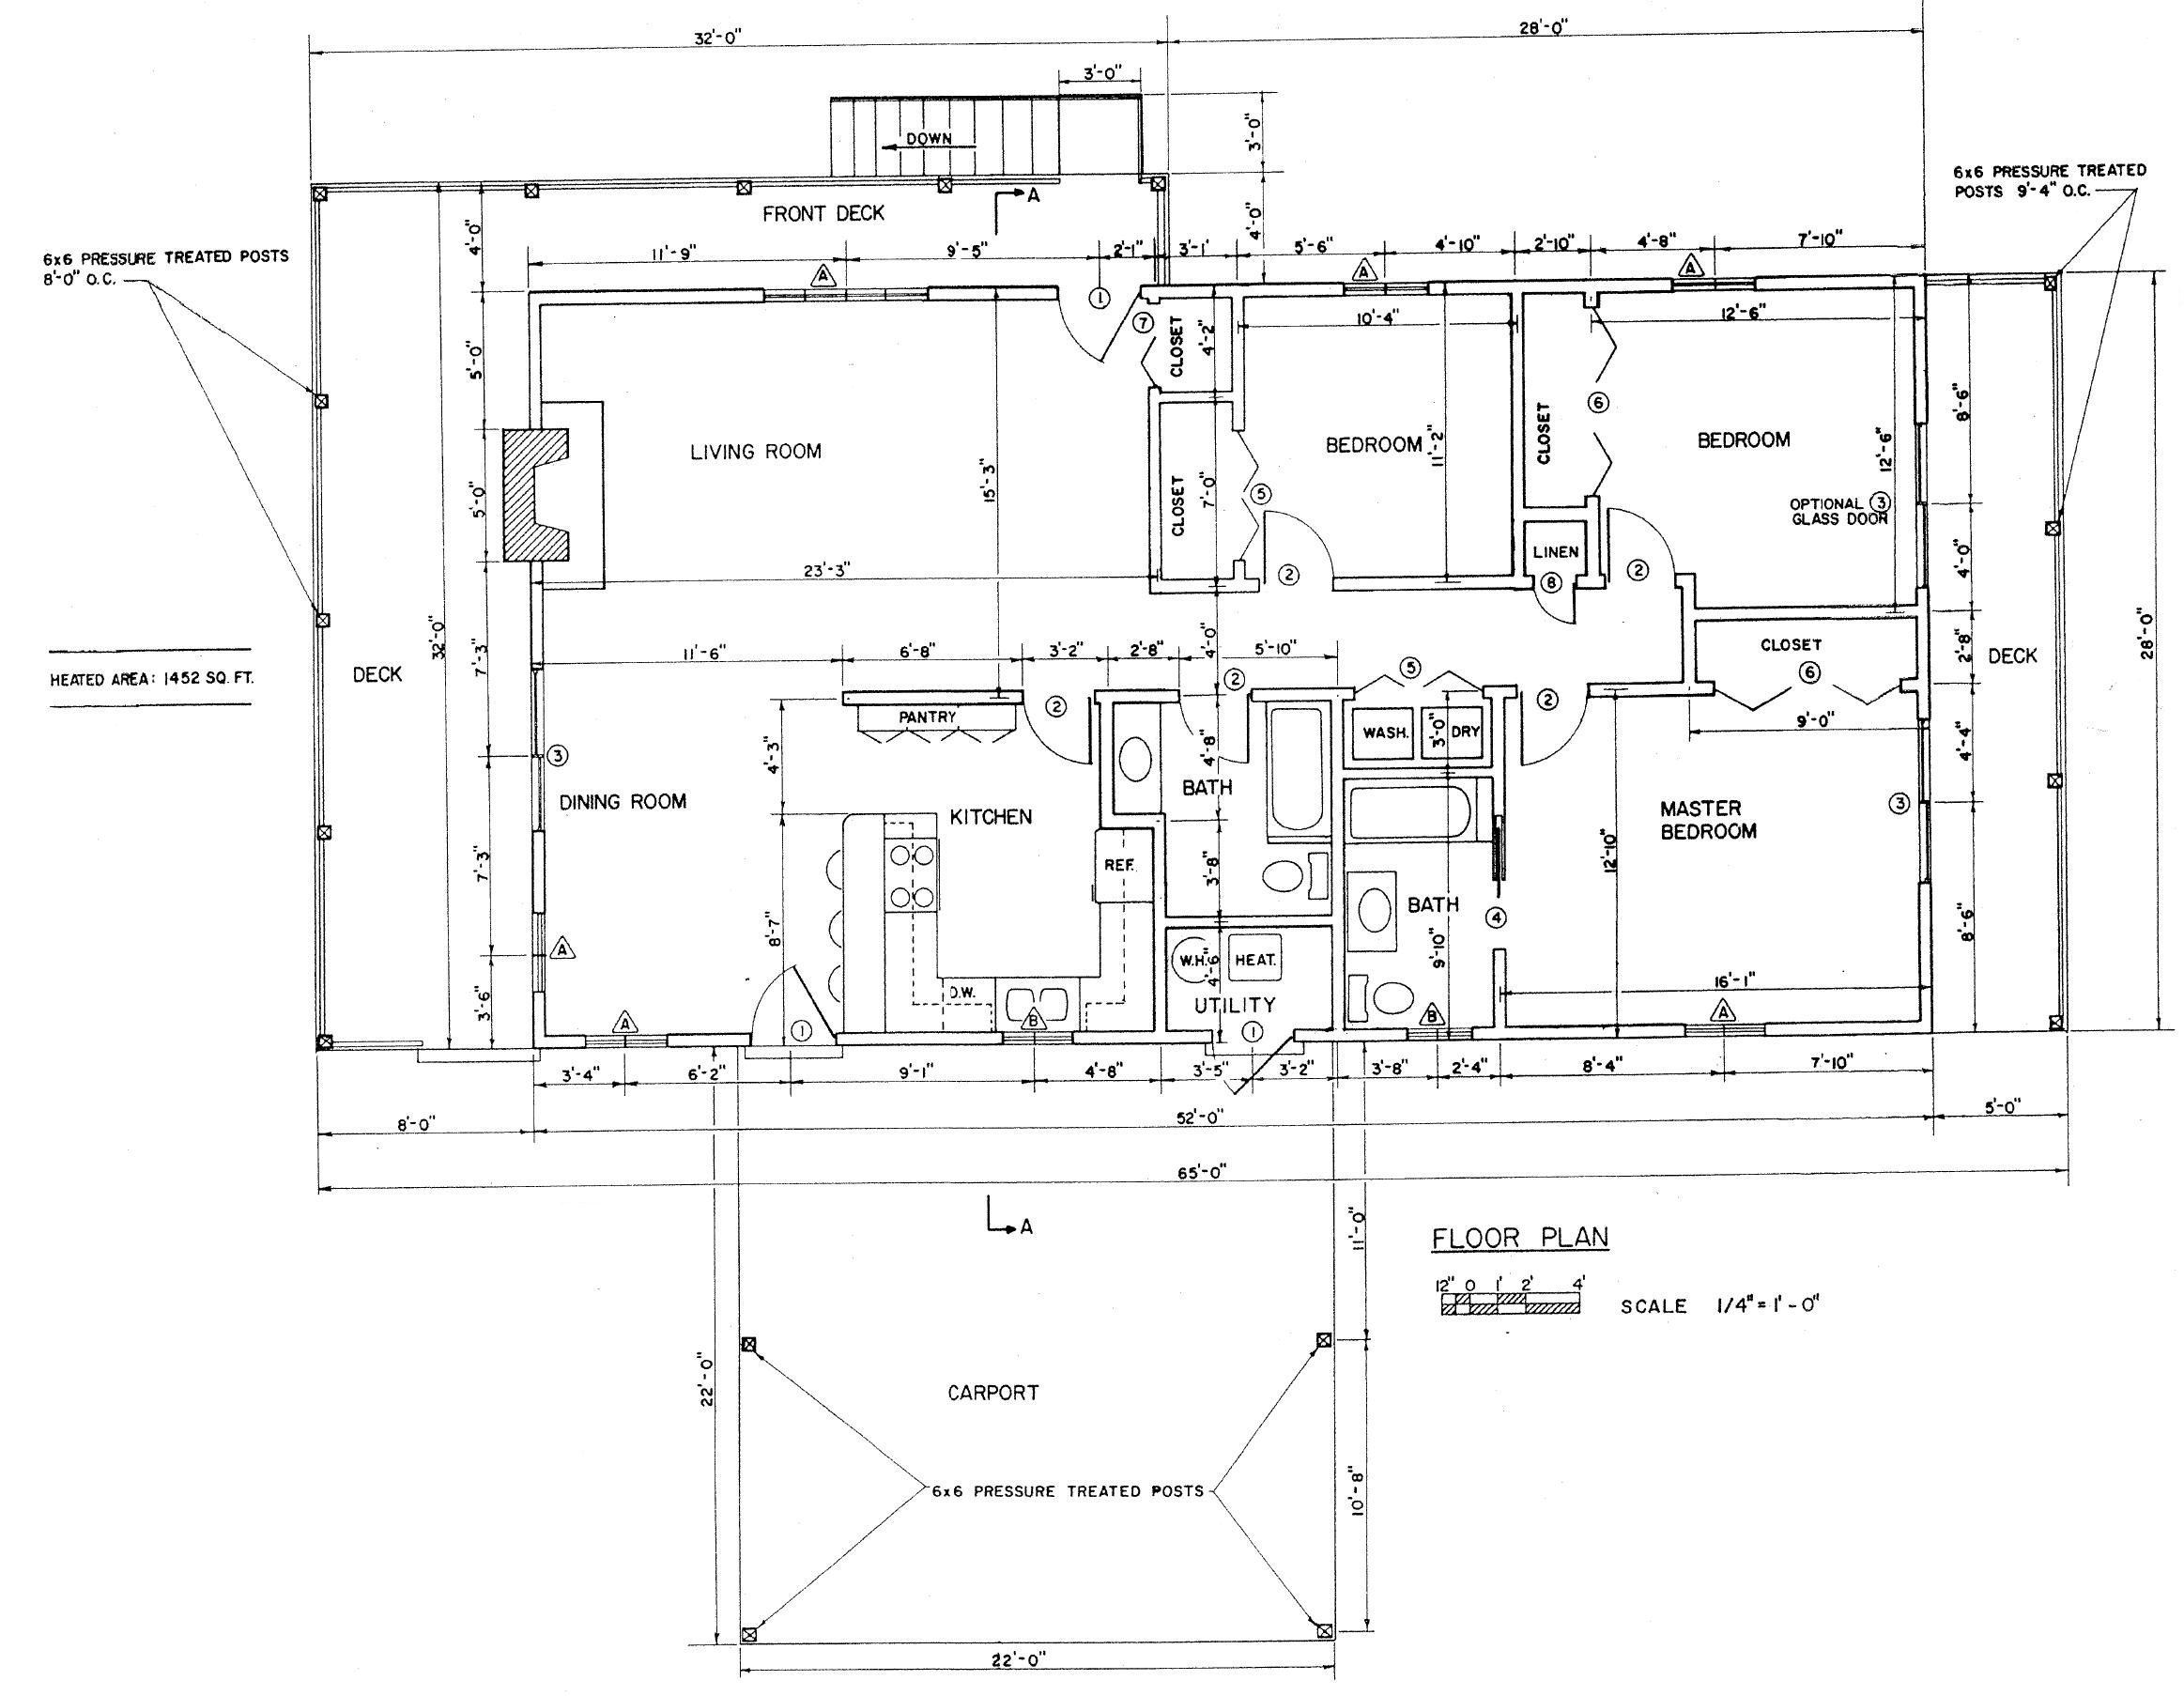 House plans freedenenasvalencia for Free home floor plans